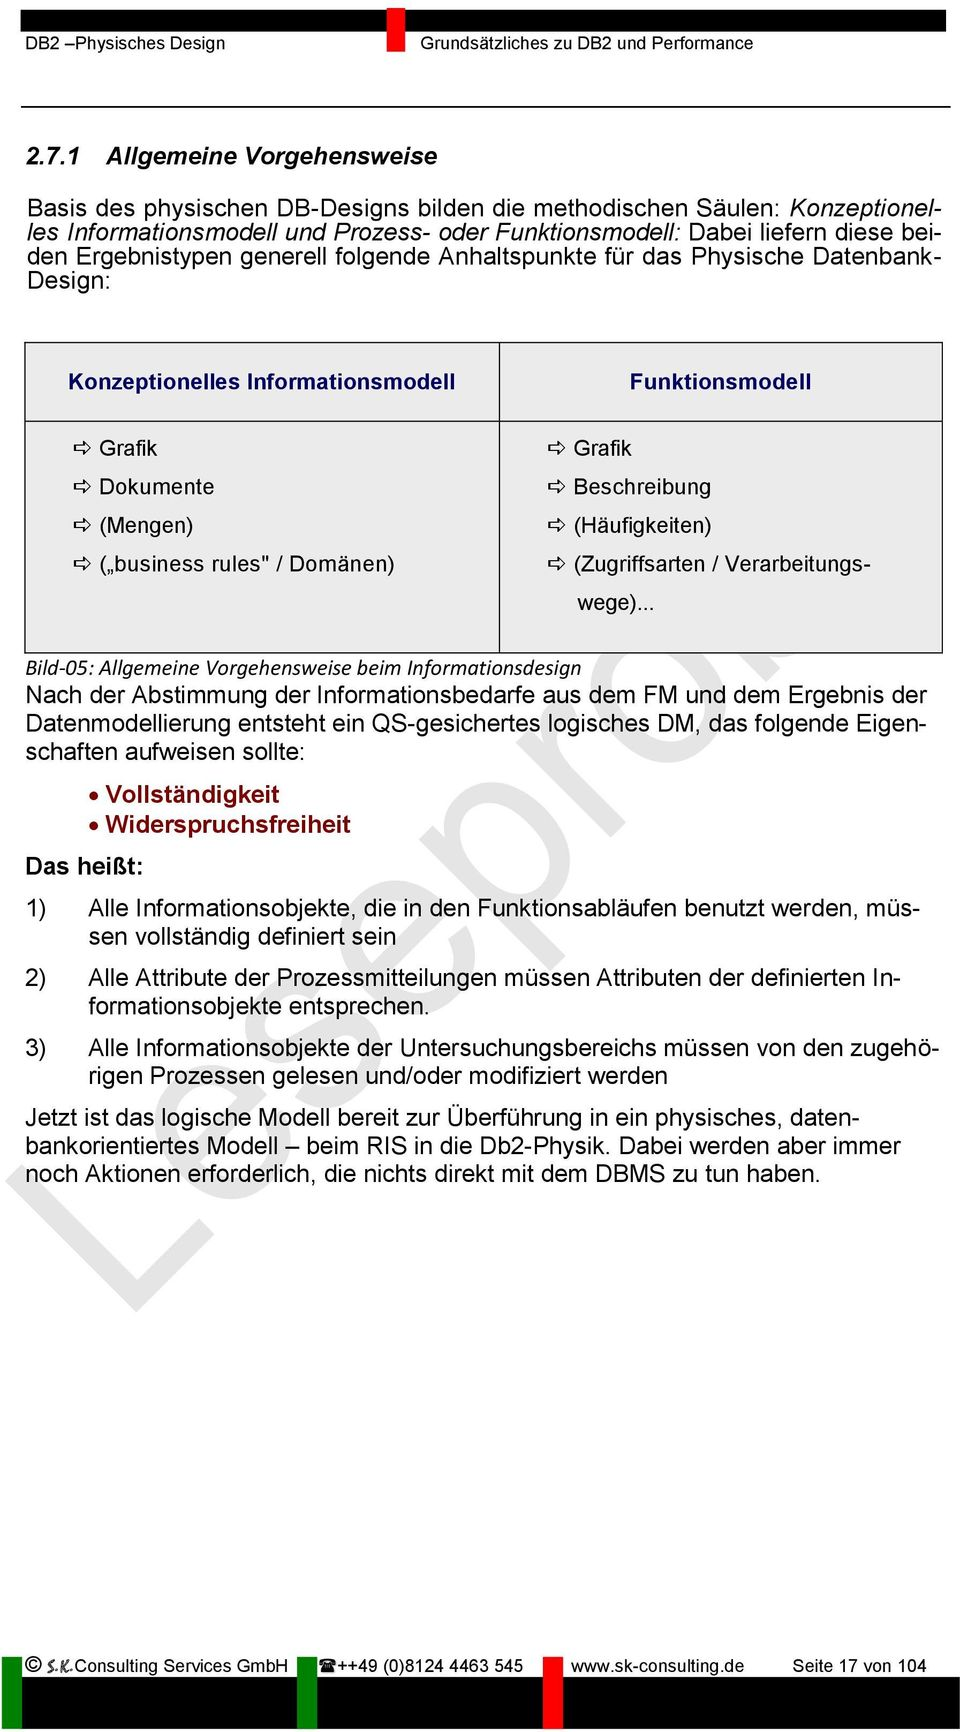 "Ergebnistypen generell folgende Anhaltspunkte für das Physische Datenbank- Design: Konzeptionelles Informationsmodell Funktionsmodell Grafik Dokumente (Mengen) ( business rules"" / Domänen) Grafik"